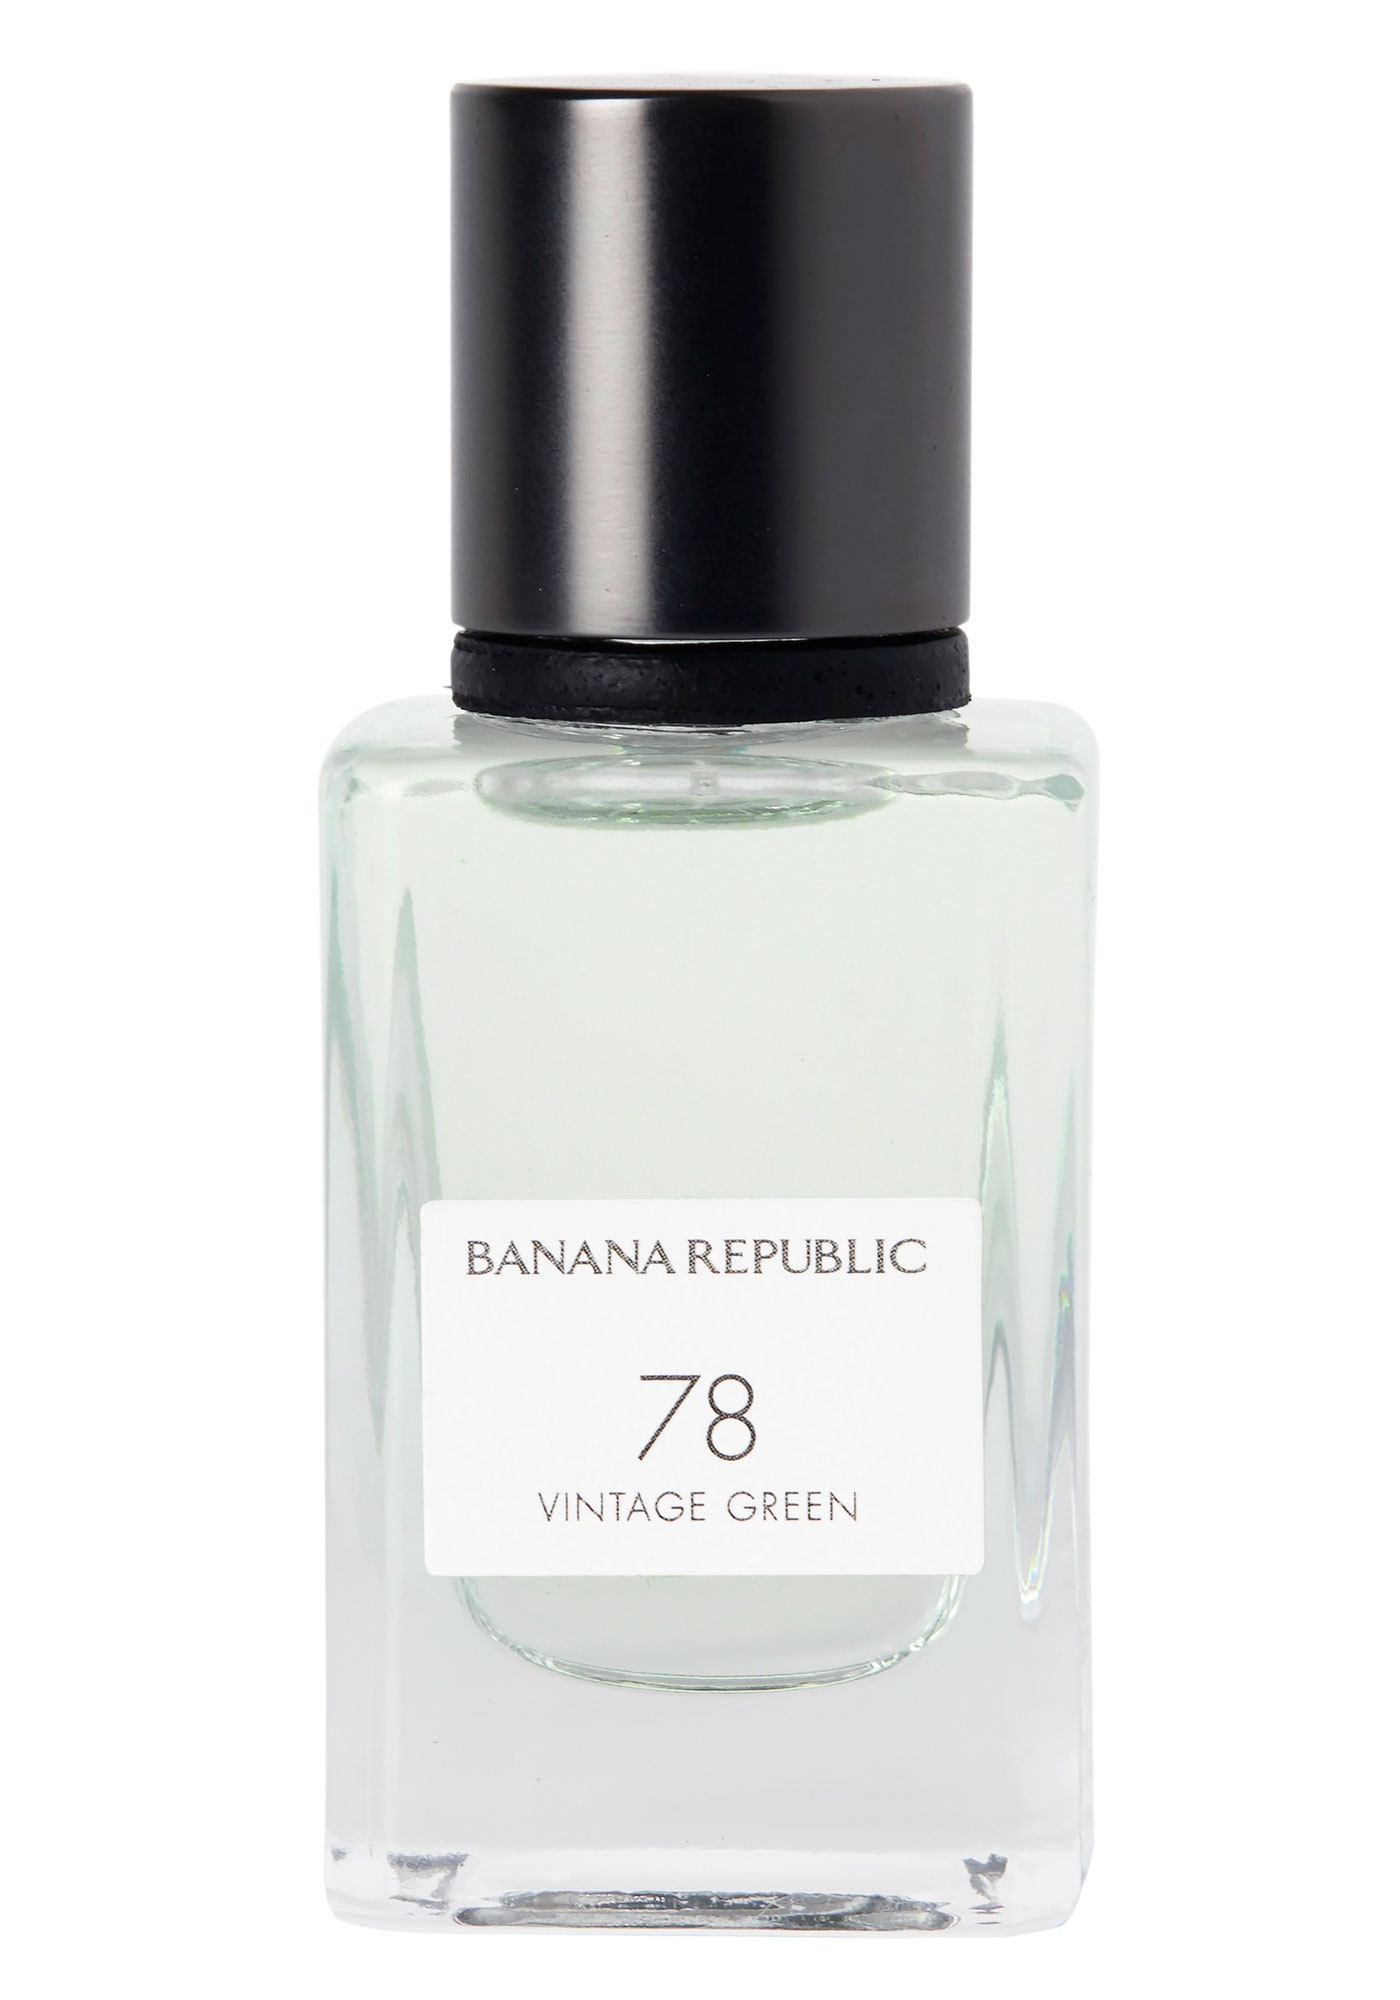 Banana Republic - Modern Apparel, Handbags, Shoes, and Accessories A perfectly tailored work suit, refined dress shirts, a premium handbag, the latest shoe ganjamoney.tk is the destination for men's, women's and petites' apparel and accessories for any occasion.